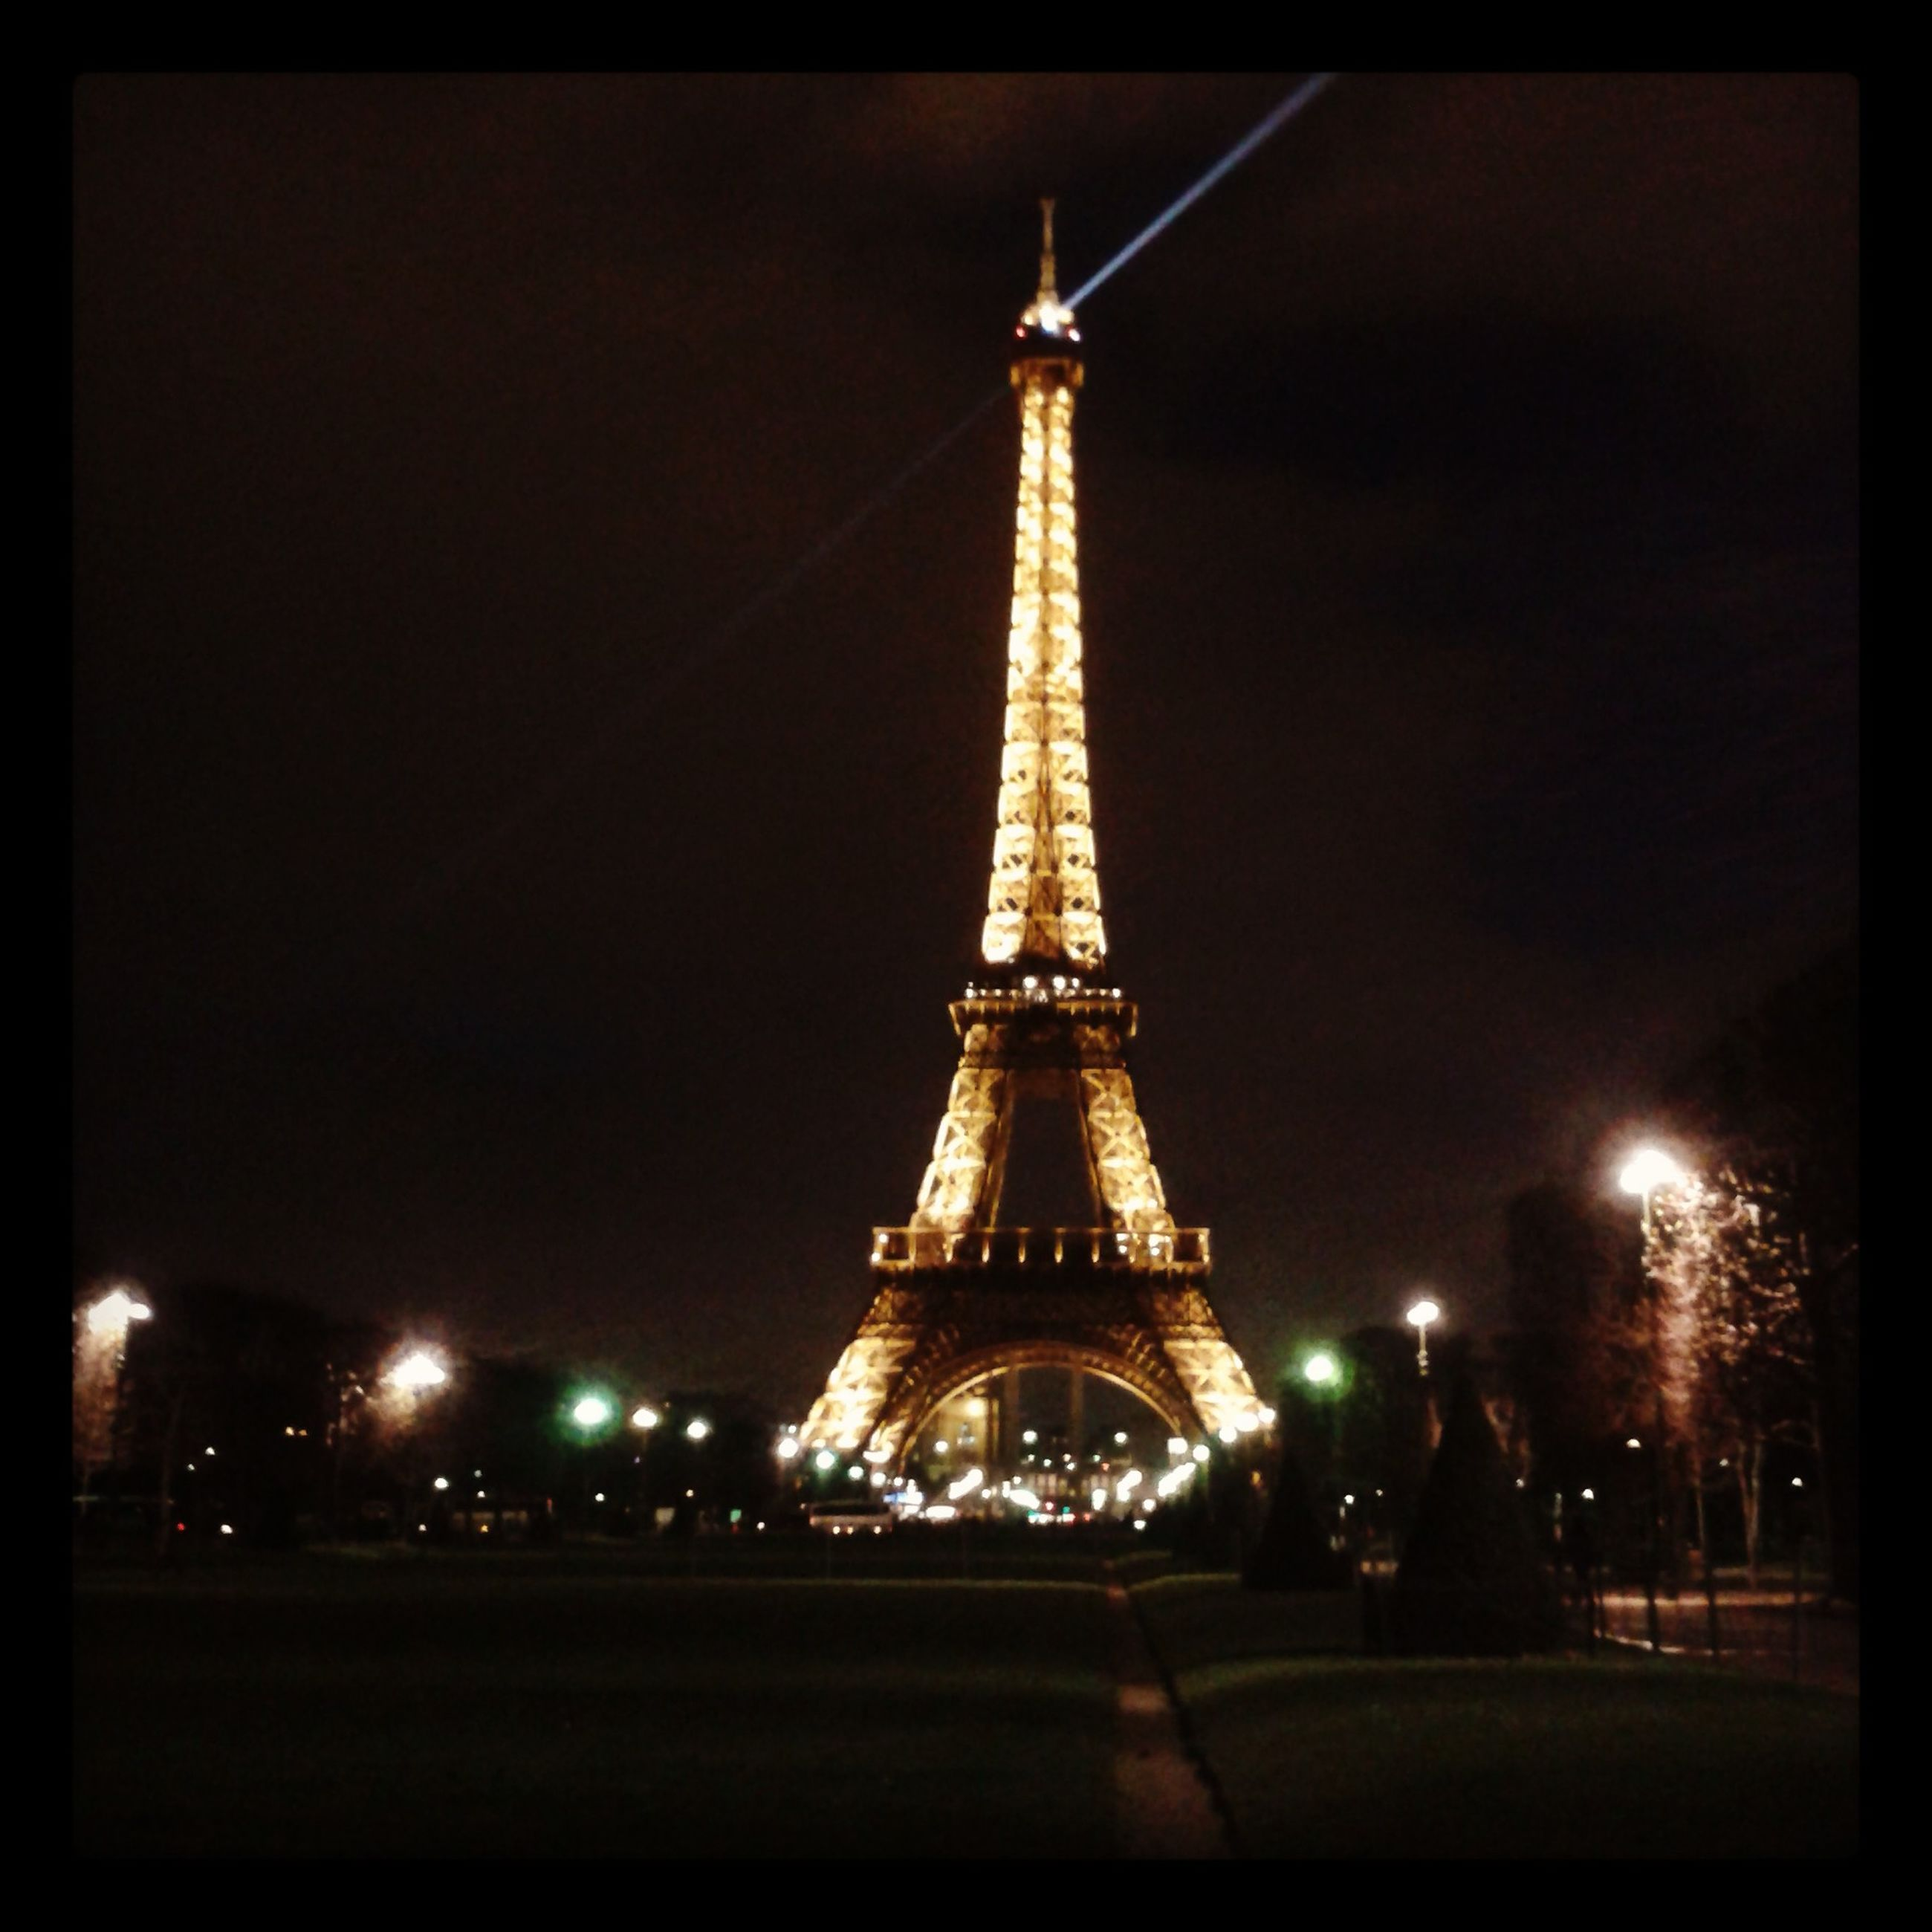 illuminated, night, transfer print, eiffel tower, architecture, built structure, travel destinations, famous place, international landmark, sky, capital cities, tourism, travel, tower, tall - high, auto post production filter, city, dusk, metal, low angle view